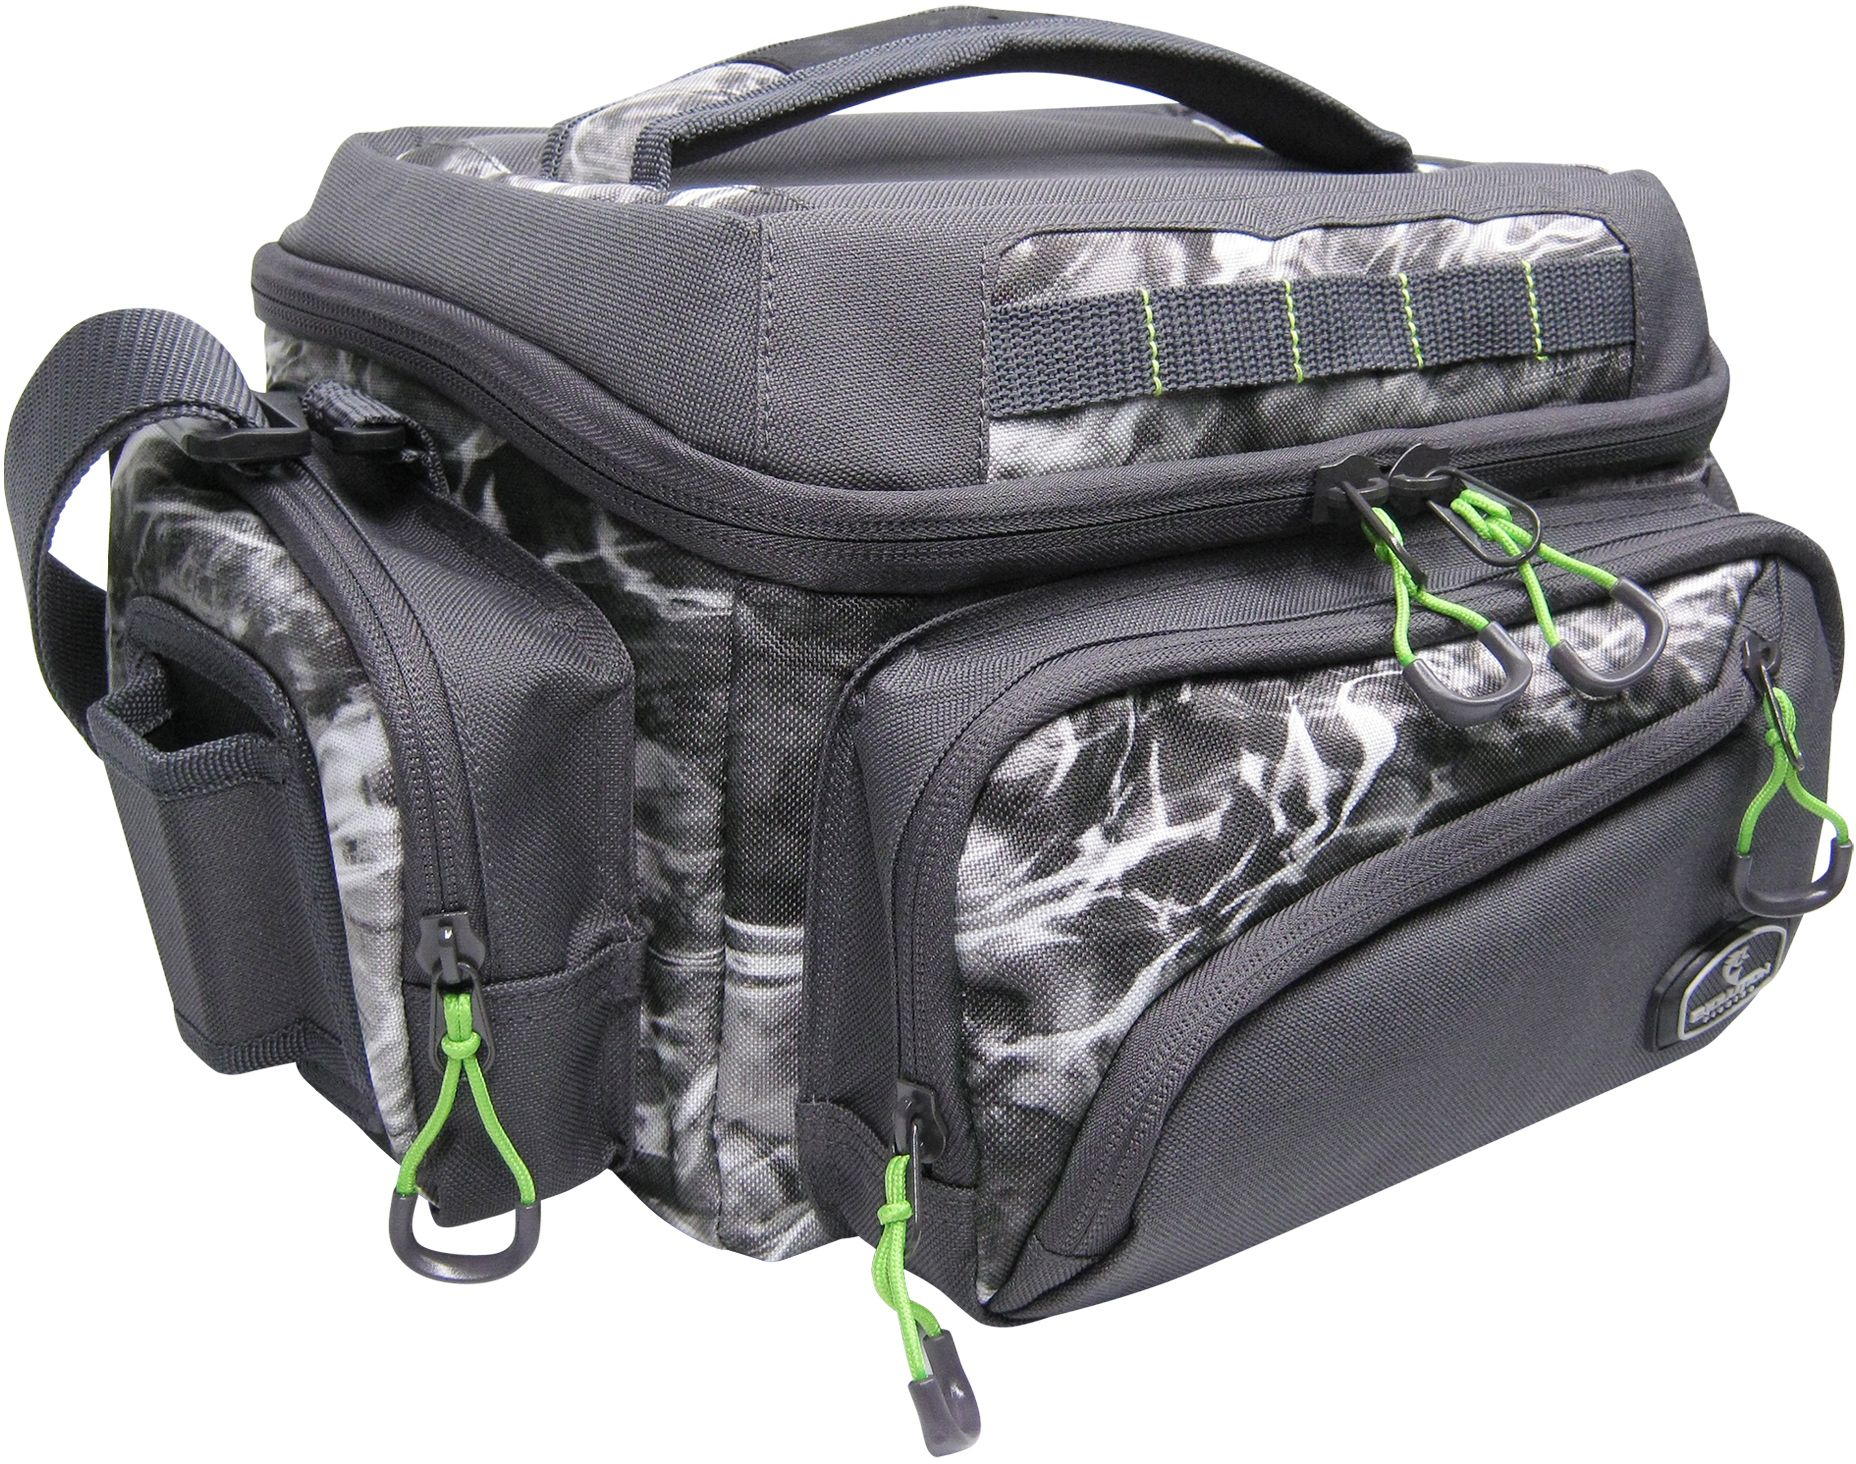 Evolution Large Mouth 3600 Tackle Bag, Size: One size